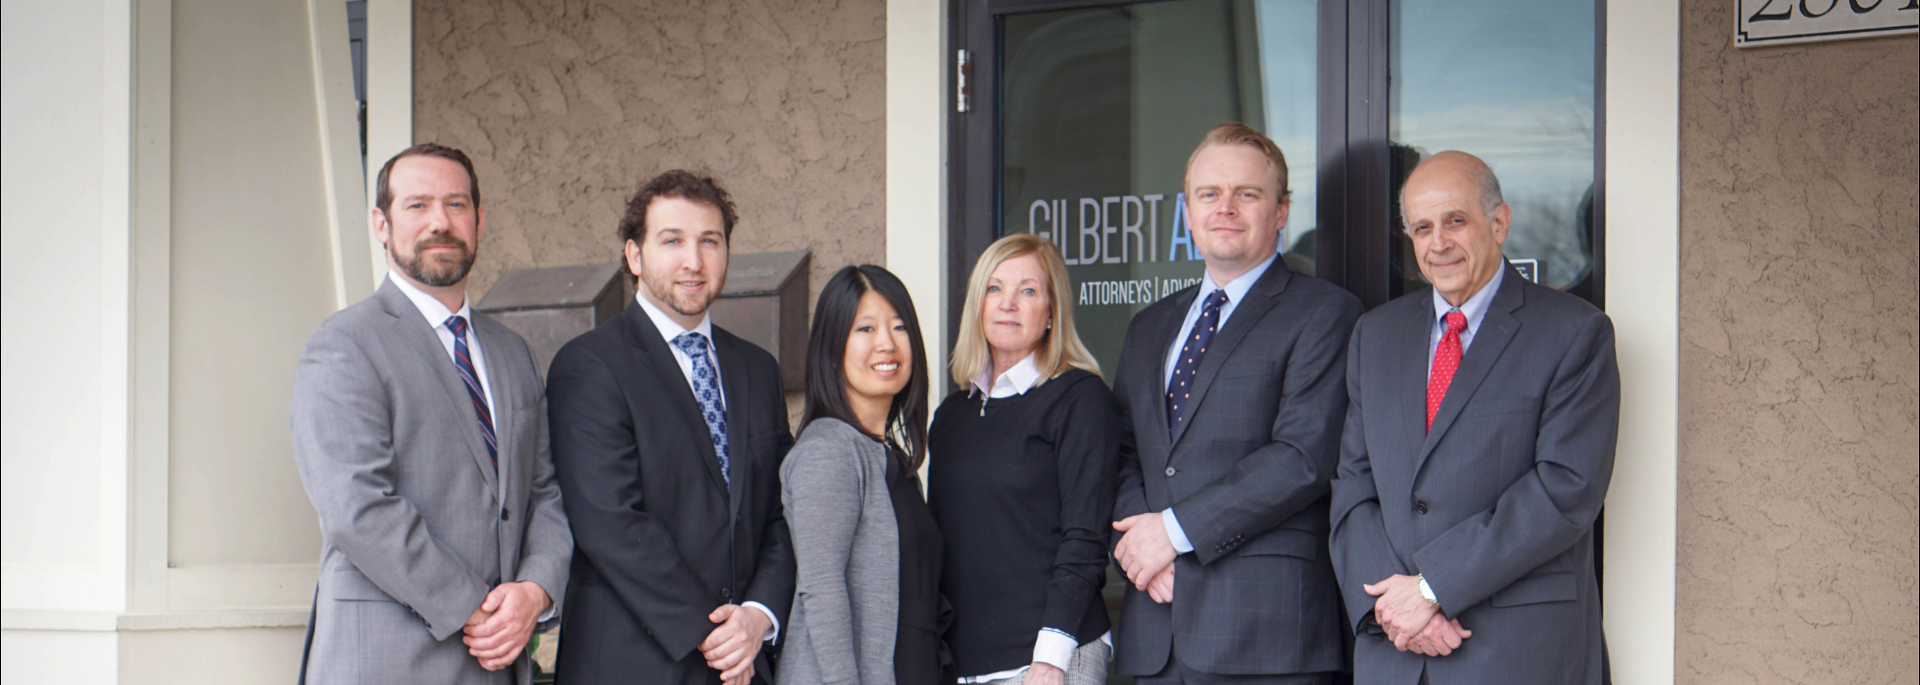 BREAKING:  Eagan-Based Law Firm Gilbert Alden becomes Gilbert Alden Barbosa PLLC